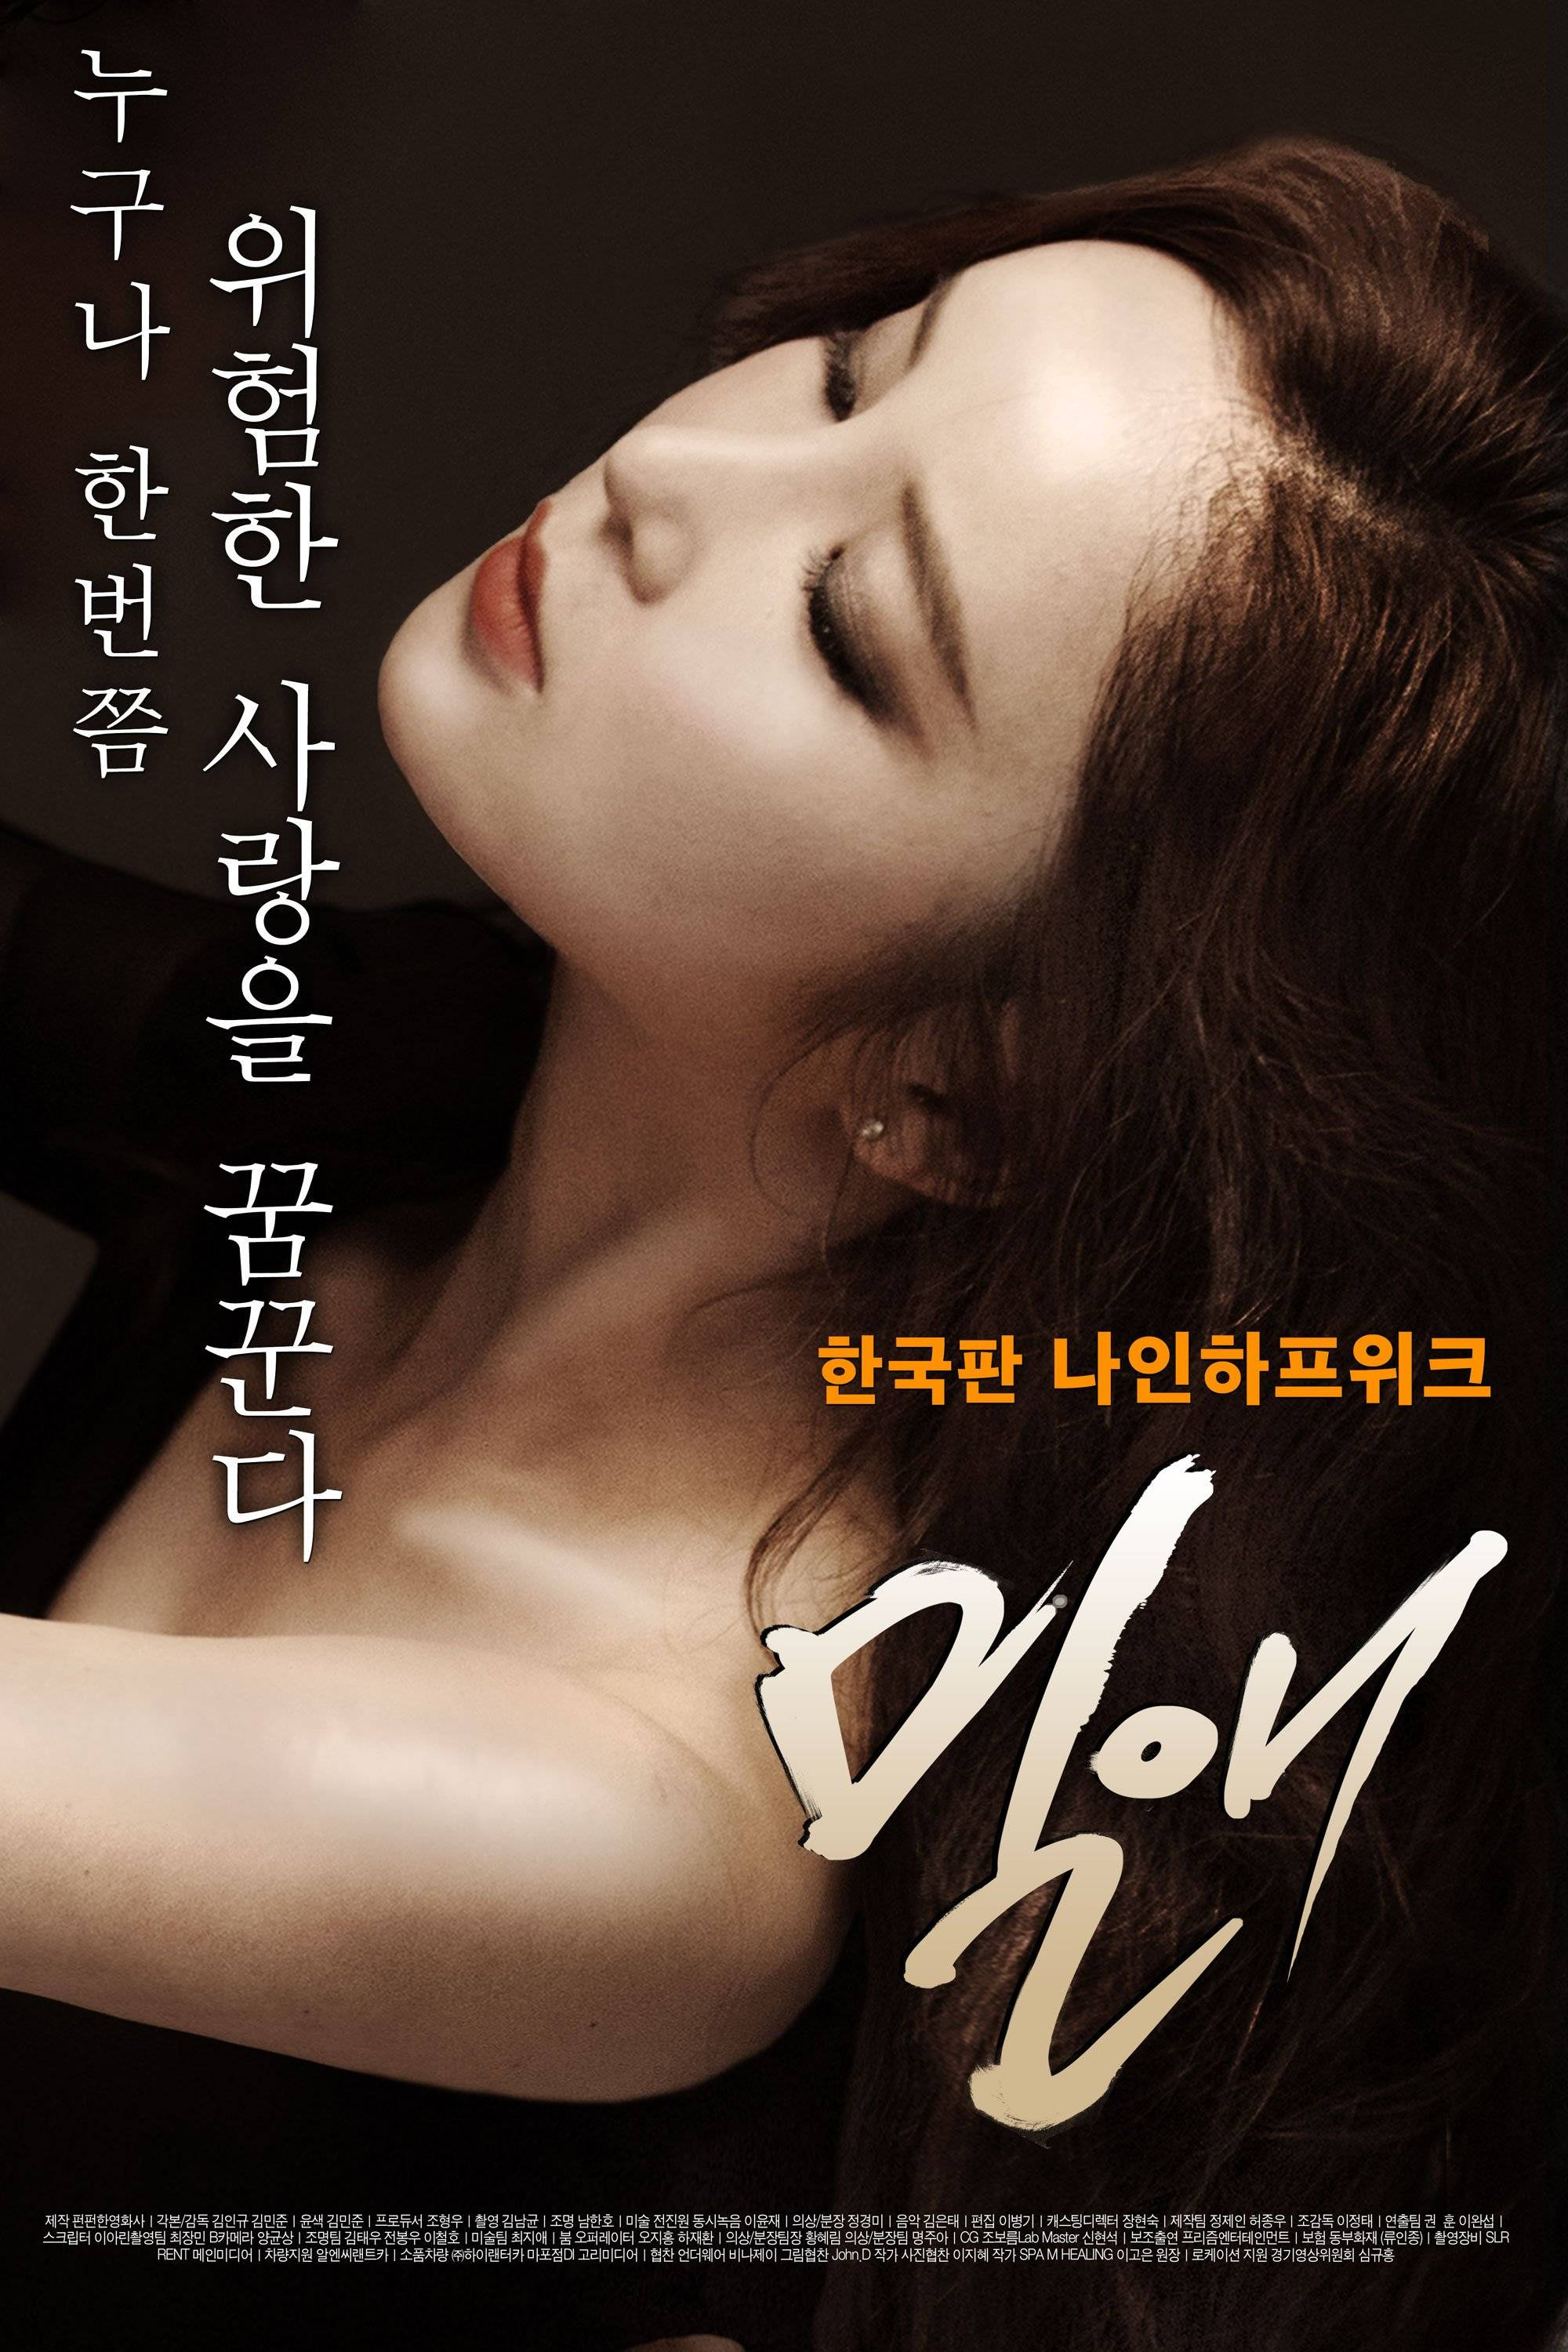 Erotic movie watch online